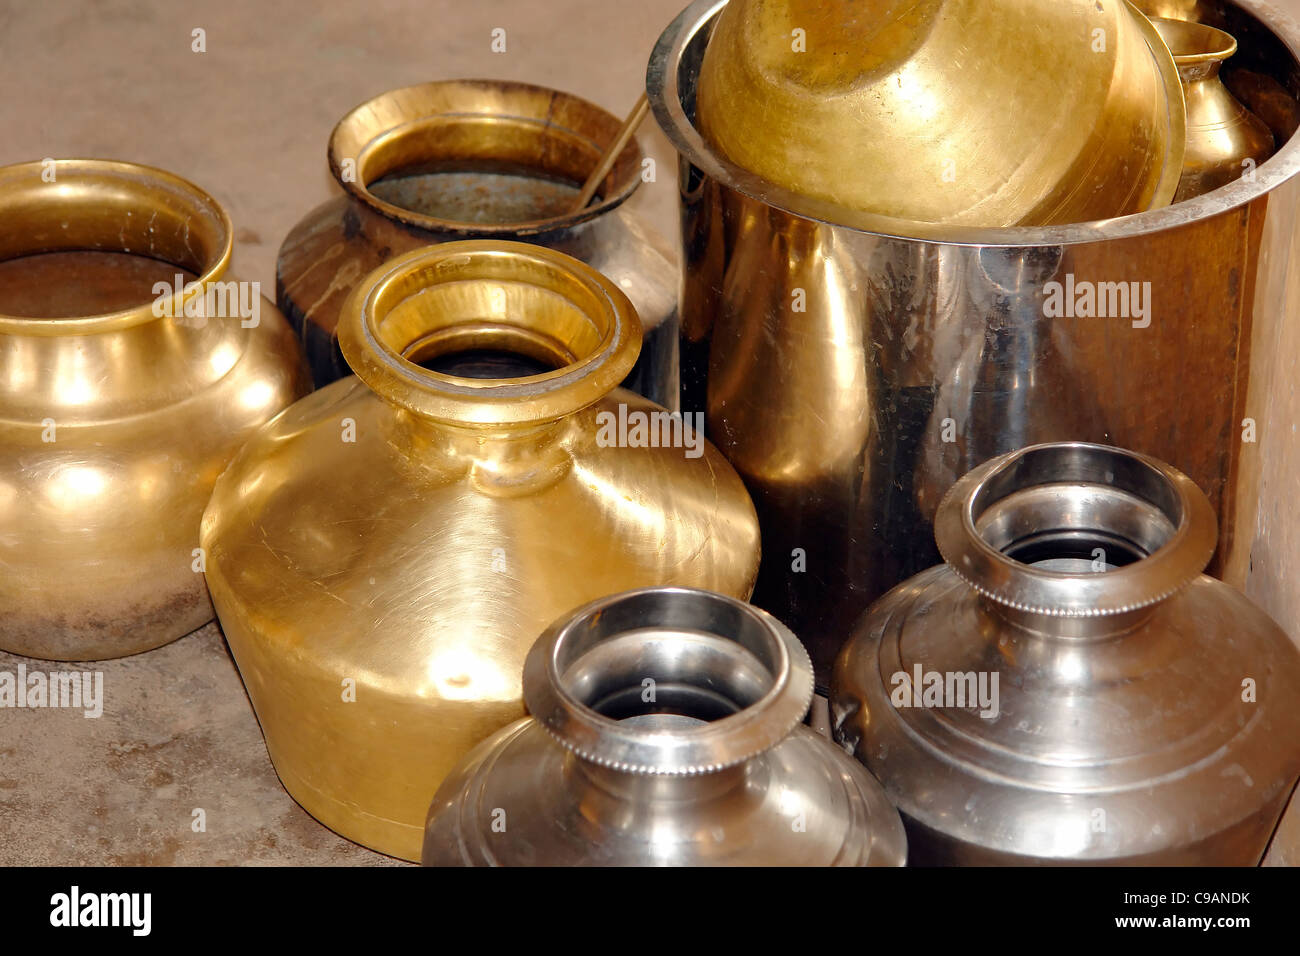 brass steel utensils pot traditional indian vessel